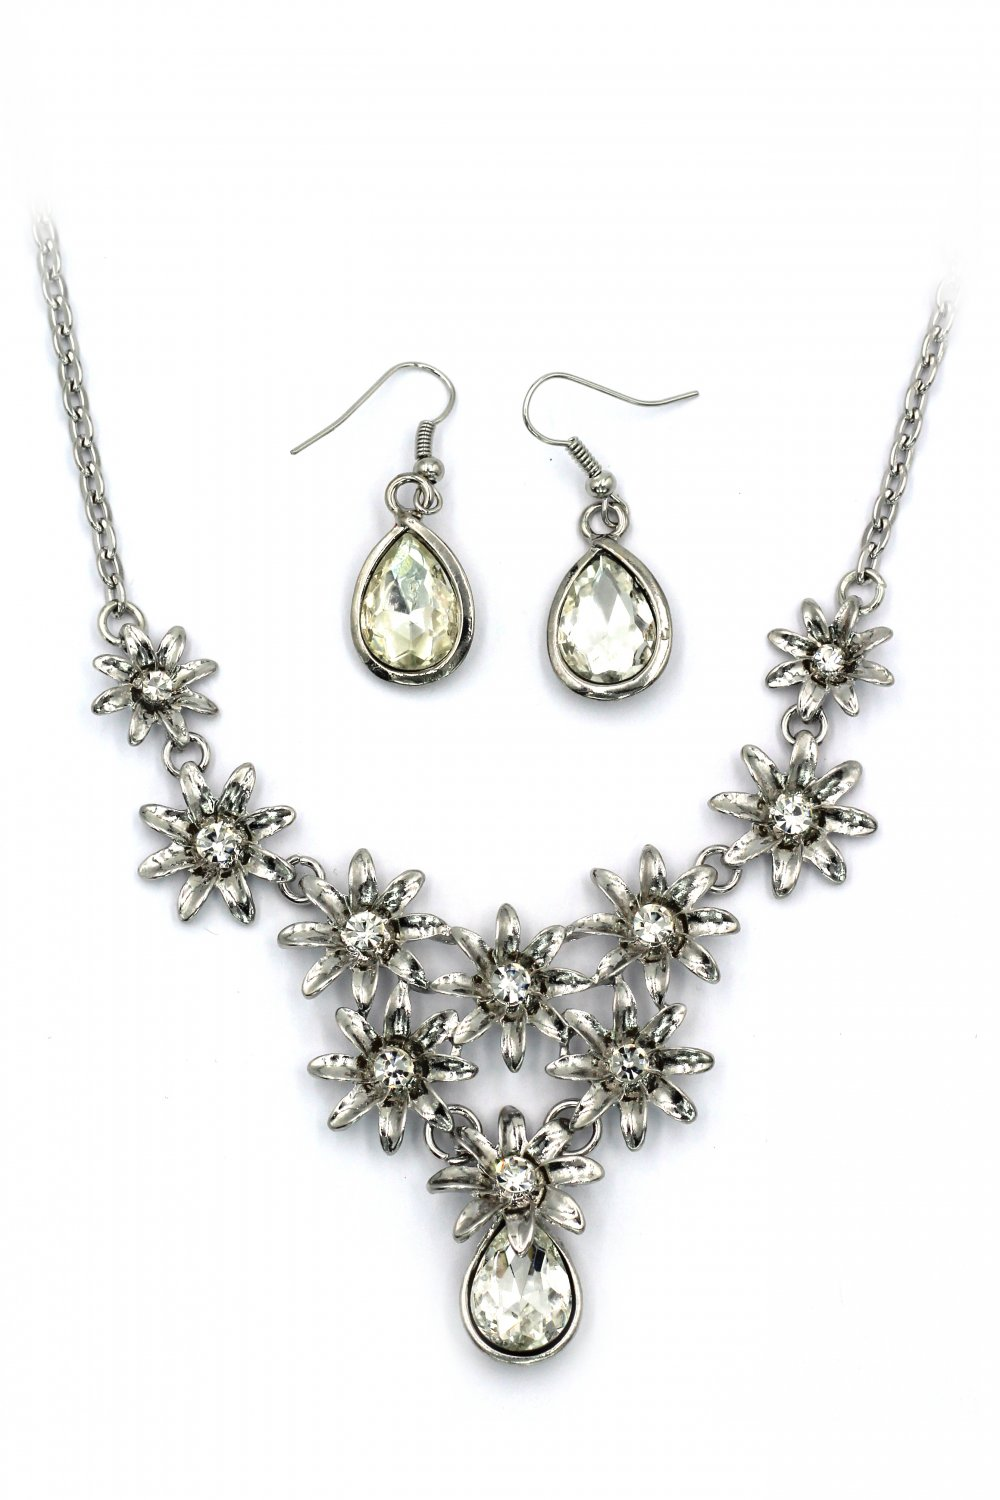 Brilliant silver flowers white crystal necklace earrings set